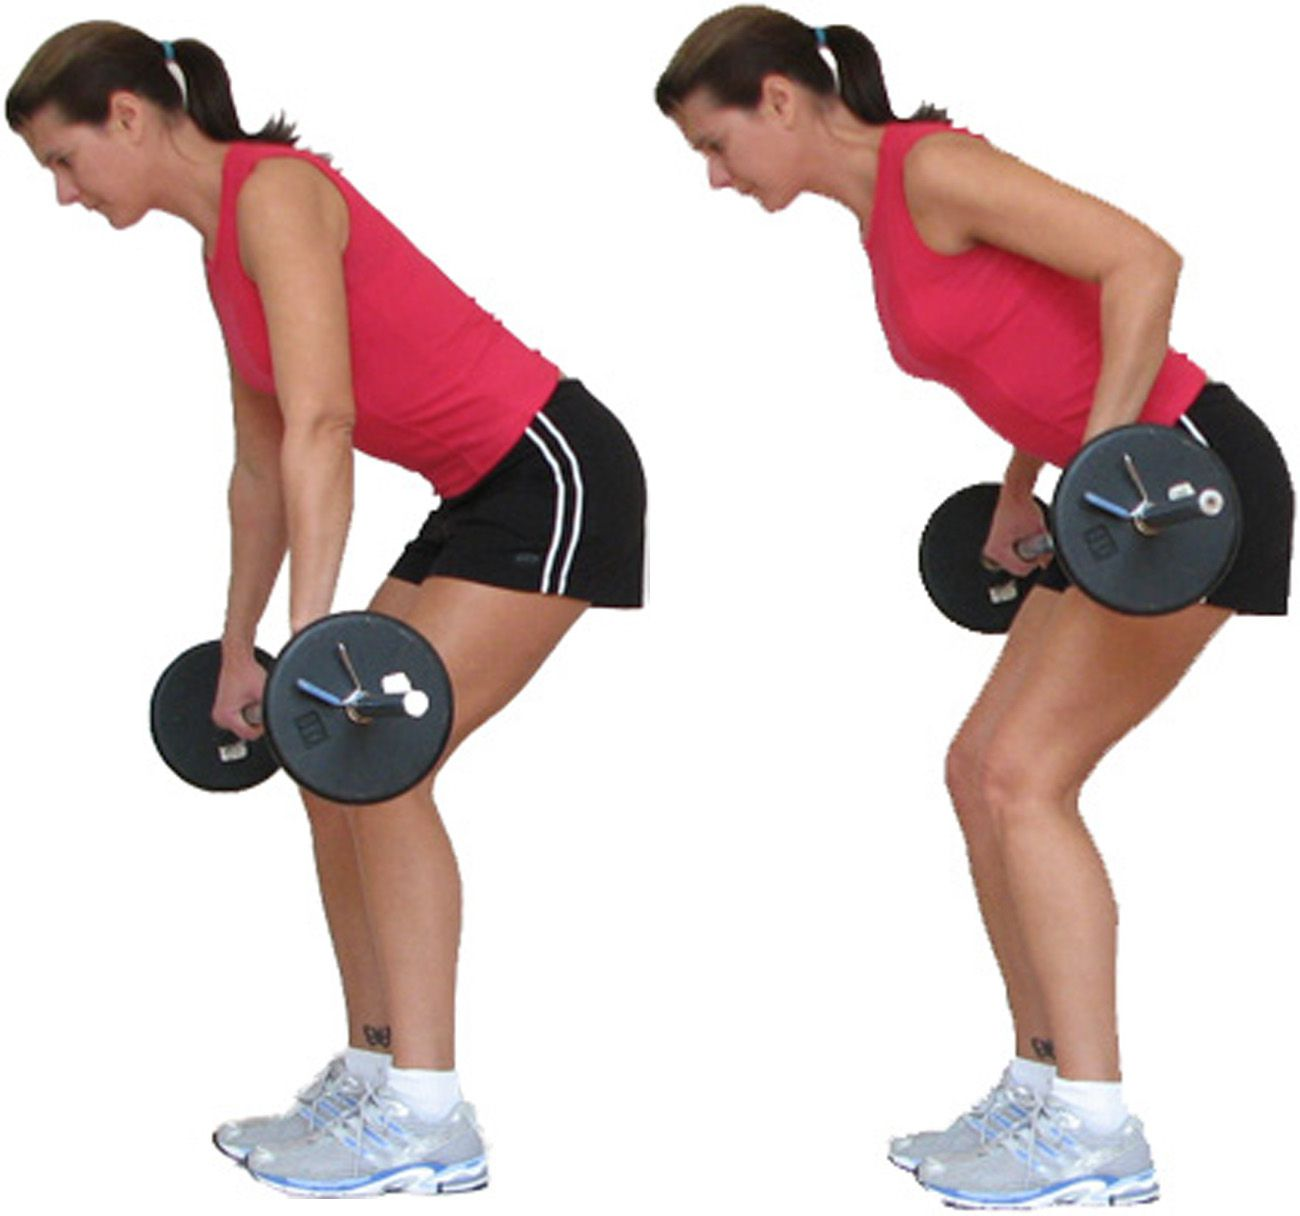 Get Strong With This Intense Upper Body Workout